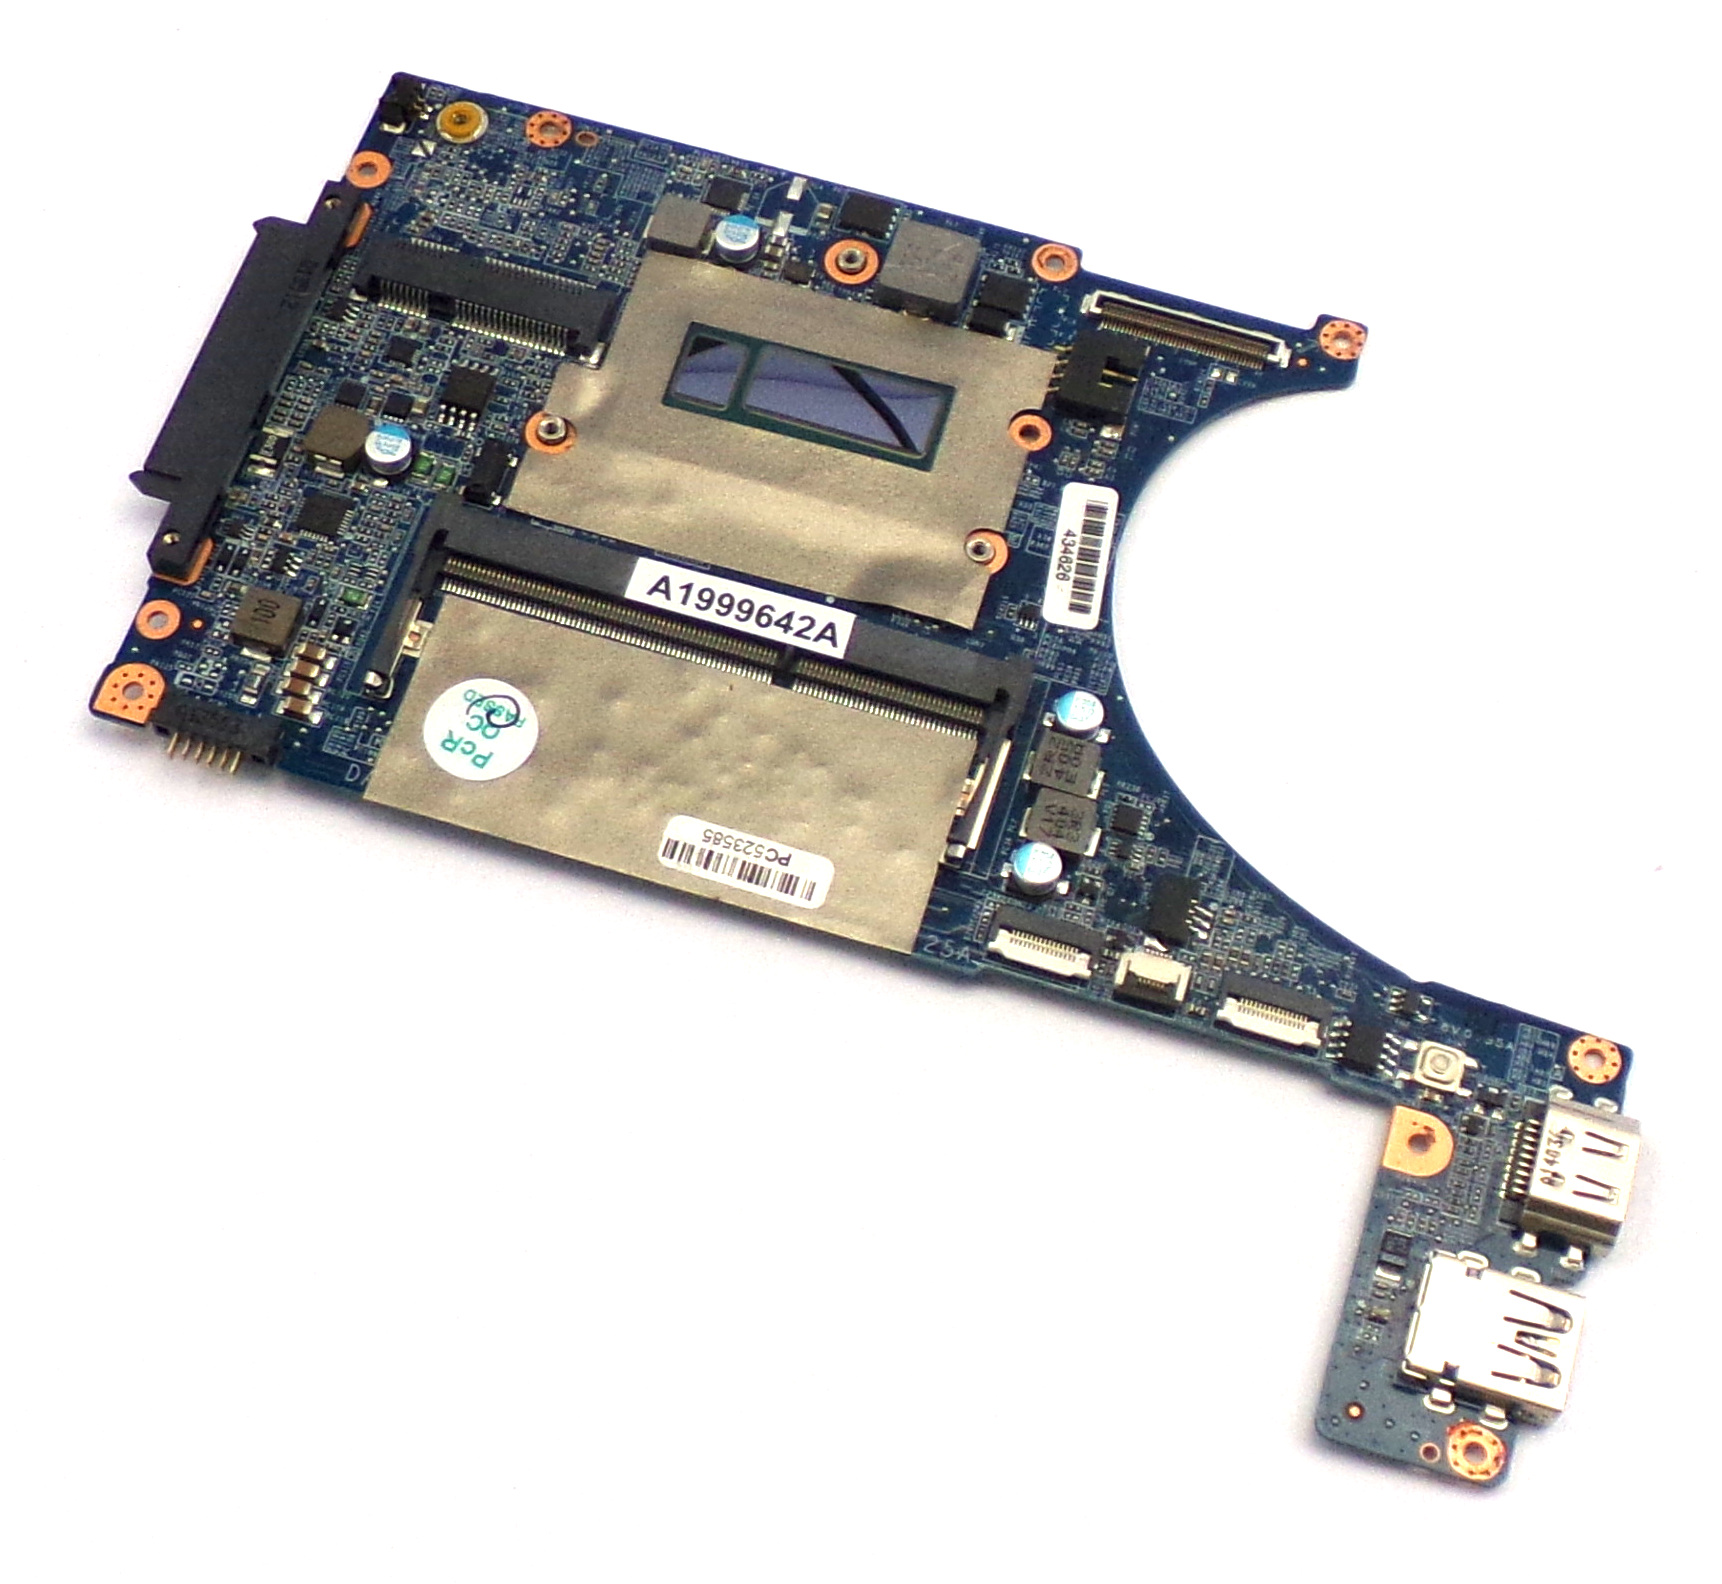 Sony A1999642A VAIO SVF-14N13CXB Intel Core i5-4200U Laptop Motherboard